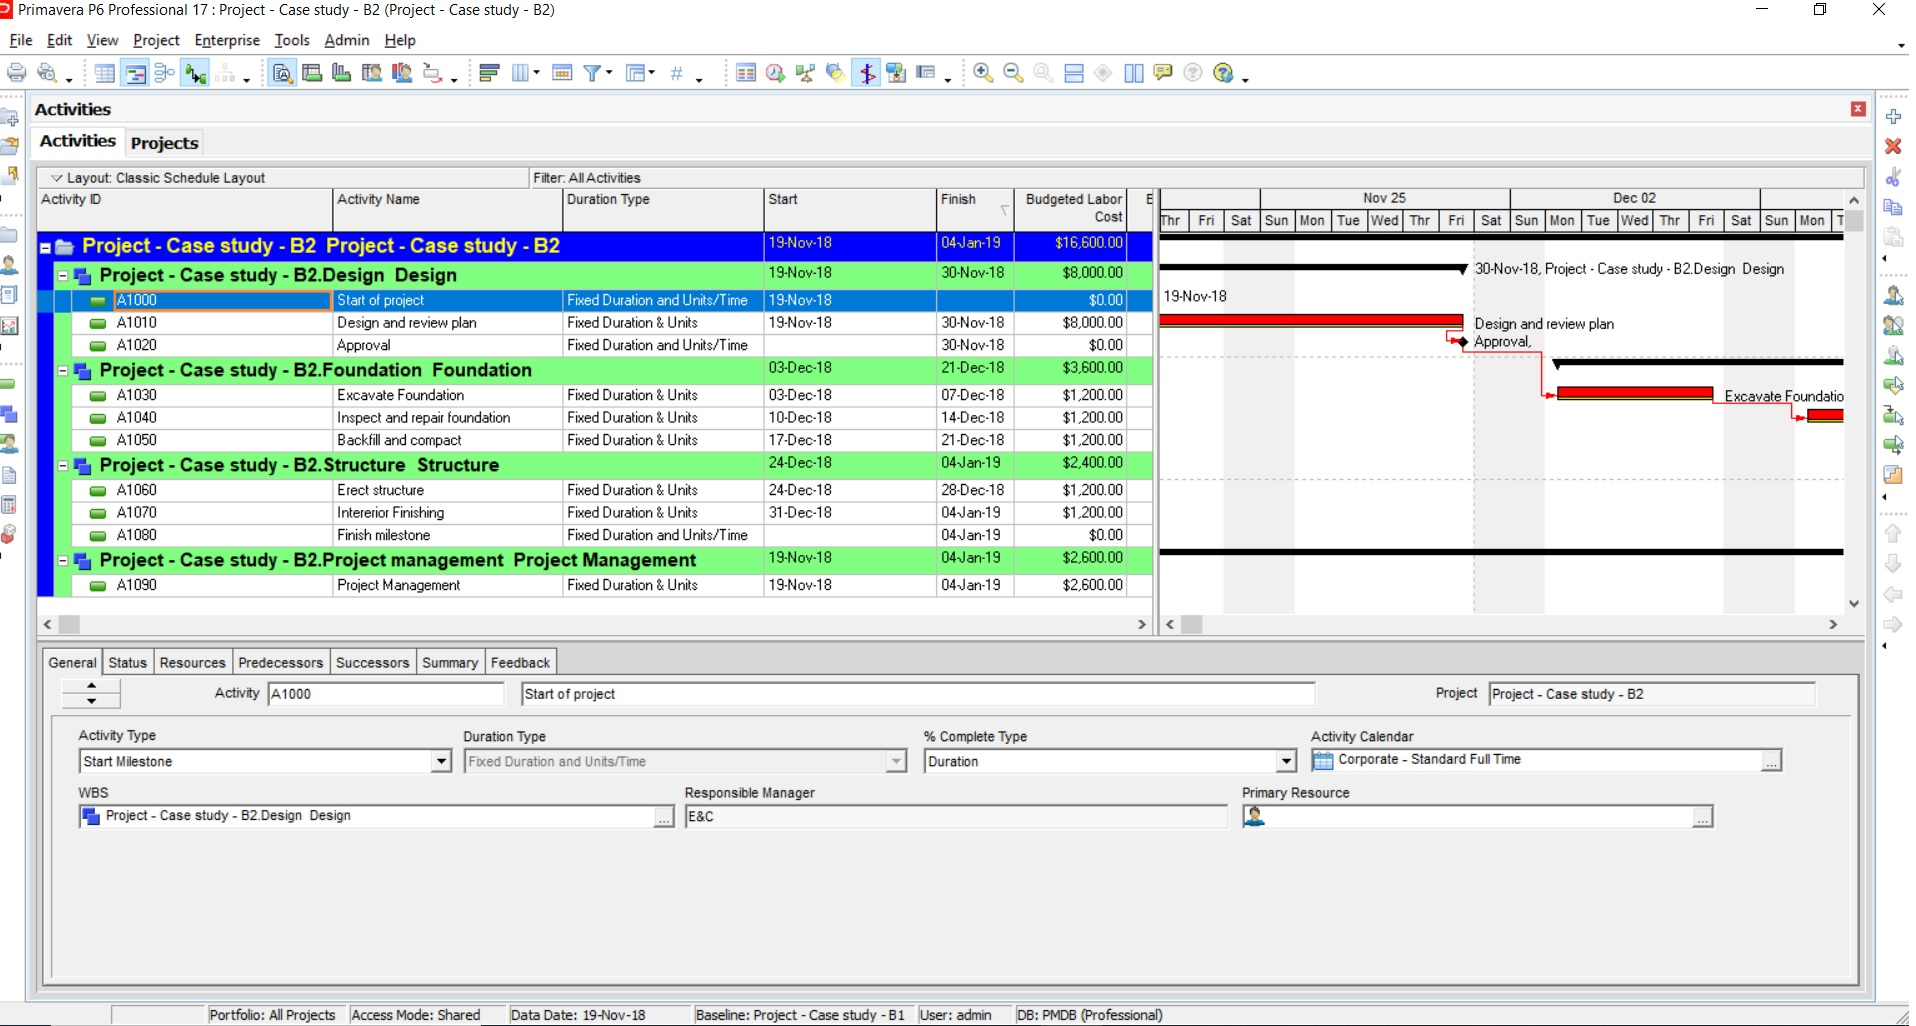 Project Management using Oracle Primavera P6 Professional